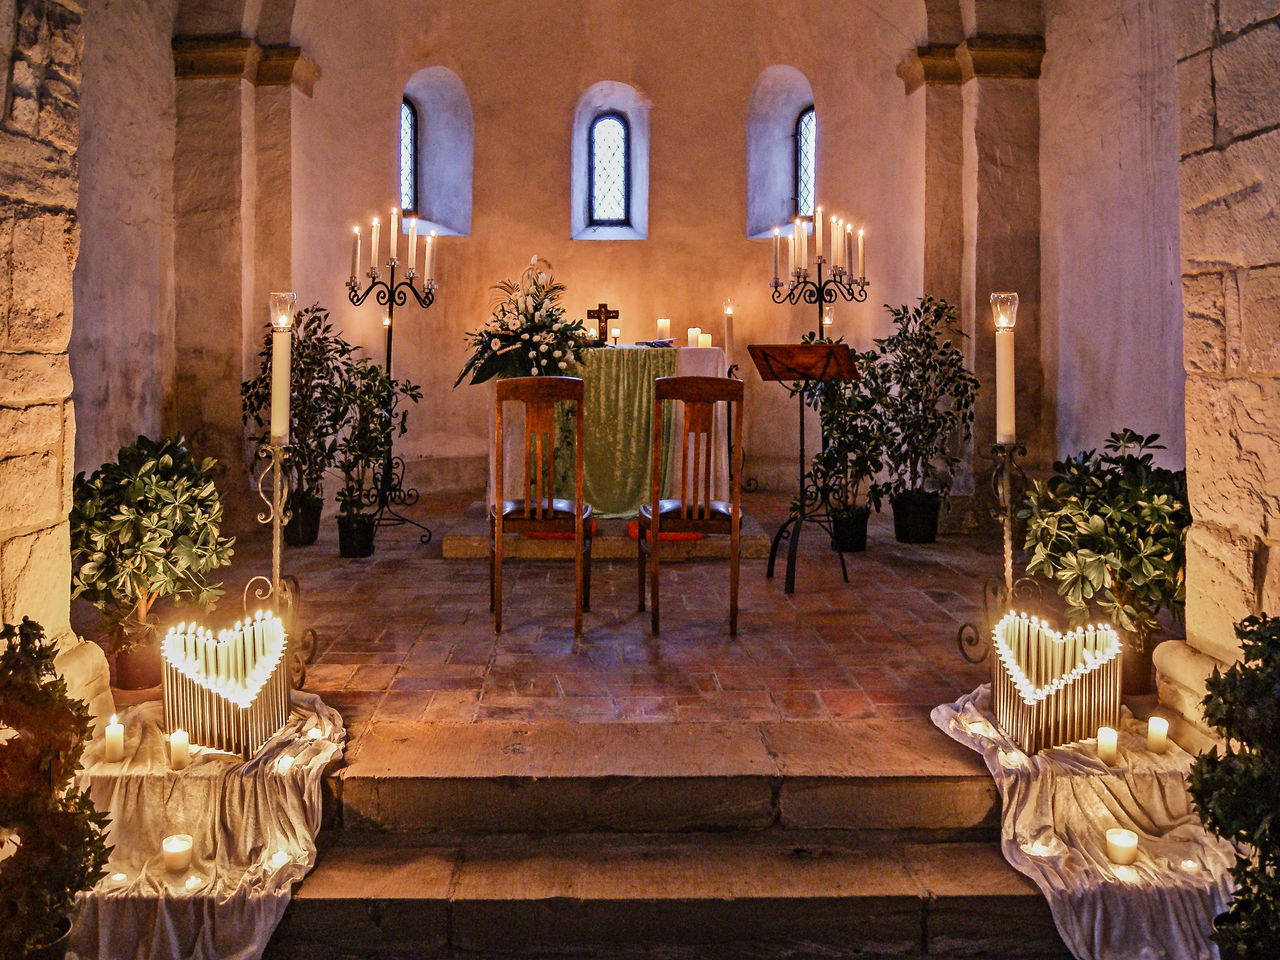 illuminated, candle, table, indoors, religion, no people, statue, architecture, flower, day